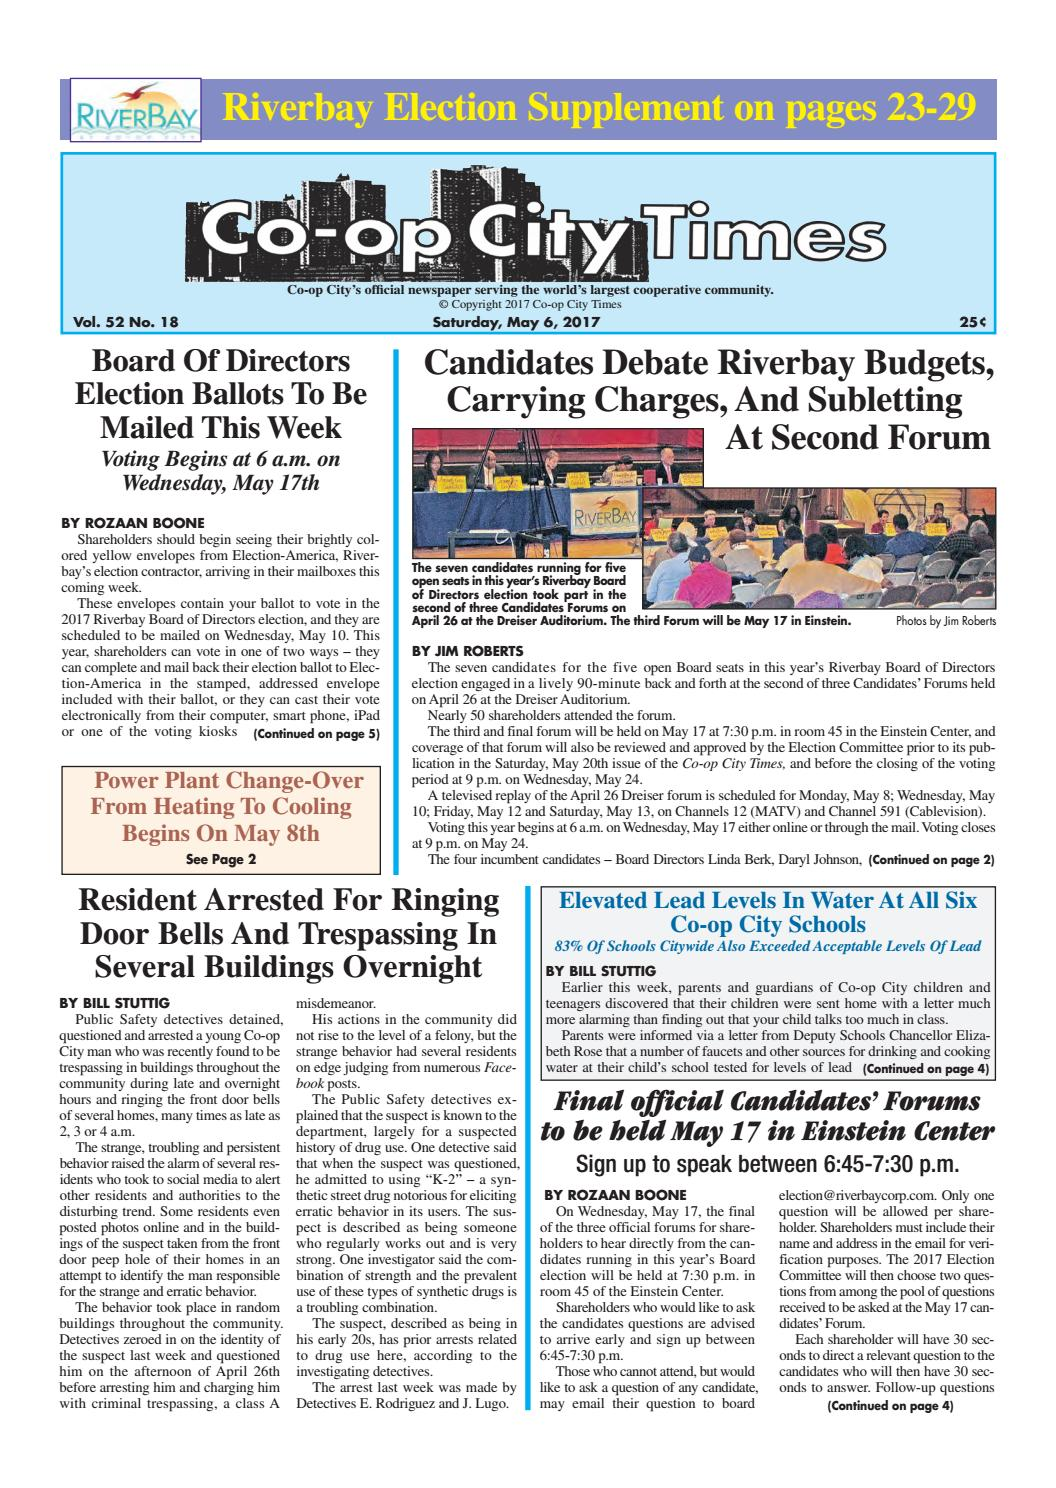 Co-op City Times 05/06/17 by Co-op City Times - issuu